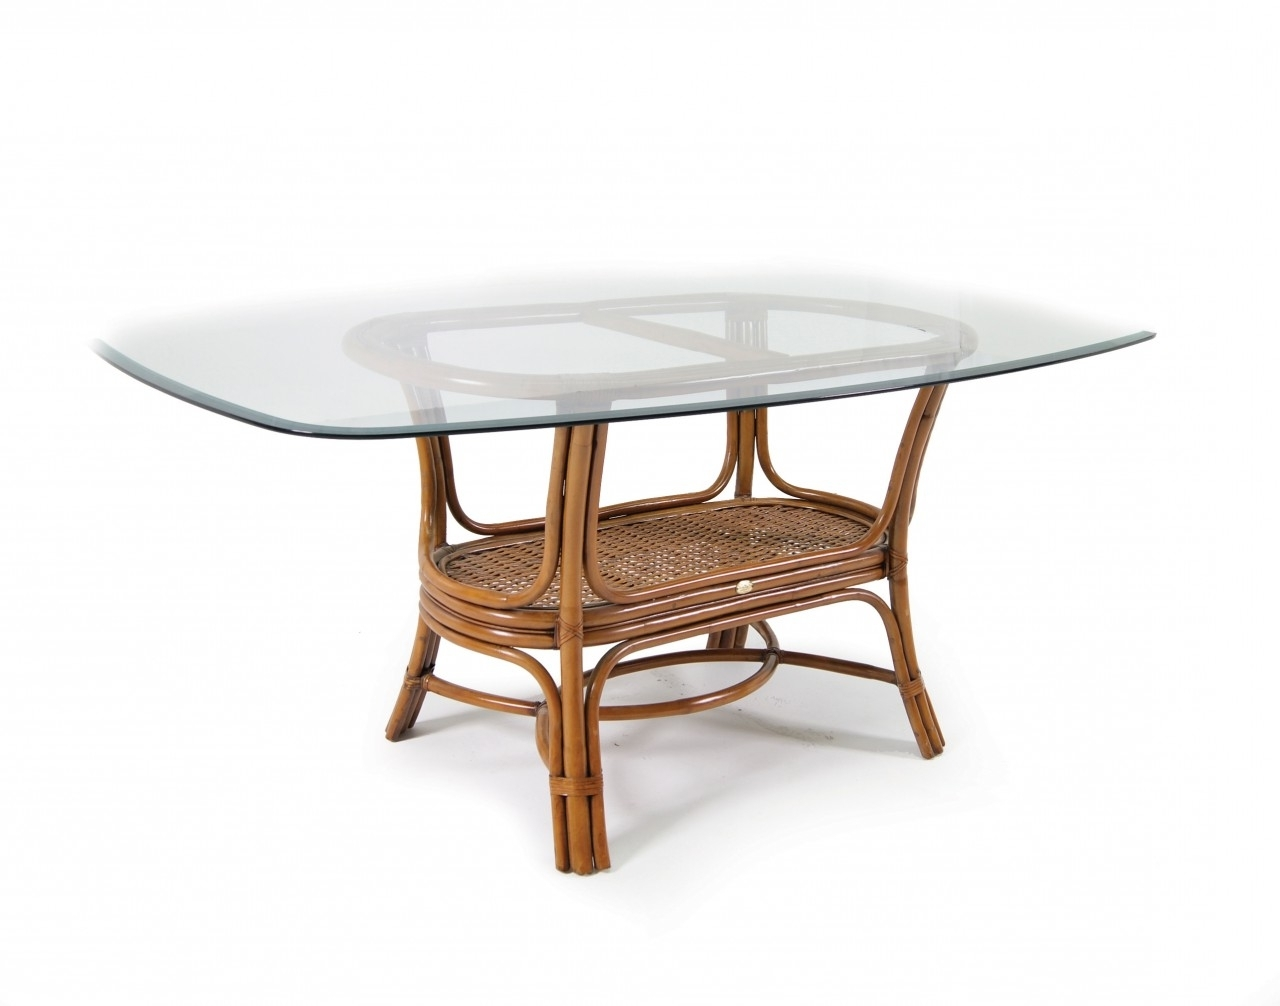 Rattan Dining Tables With Regard To Most Popular Remarkable Design Rattan Dining Table Boca Rattan Biscayne (View 18 of 25)